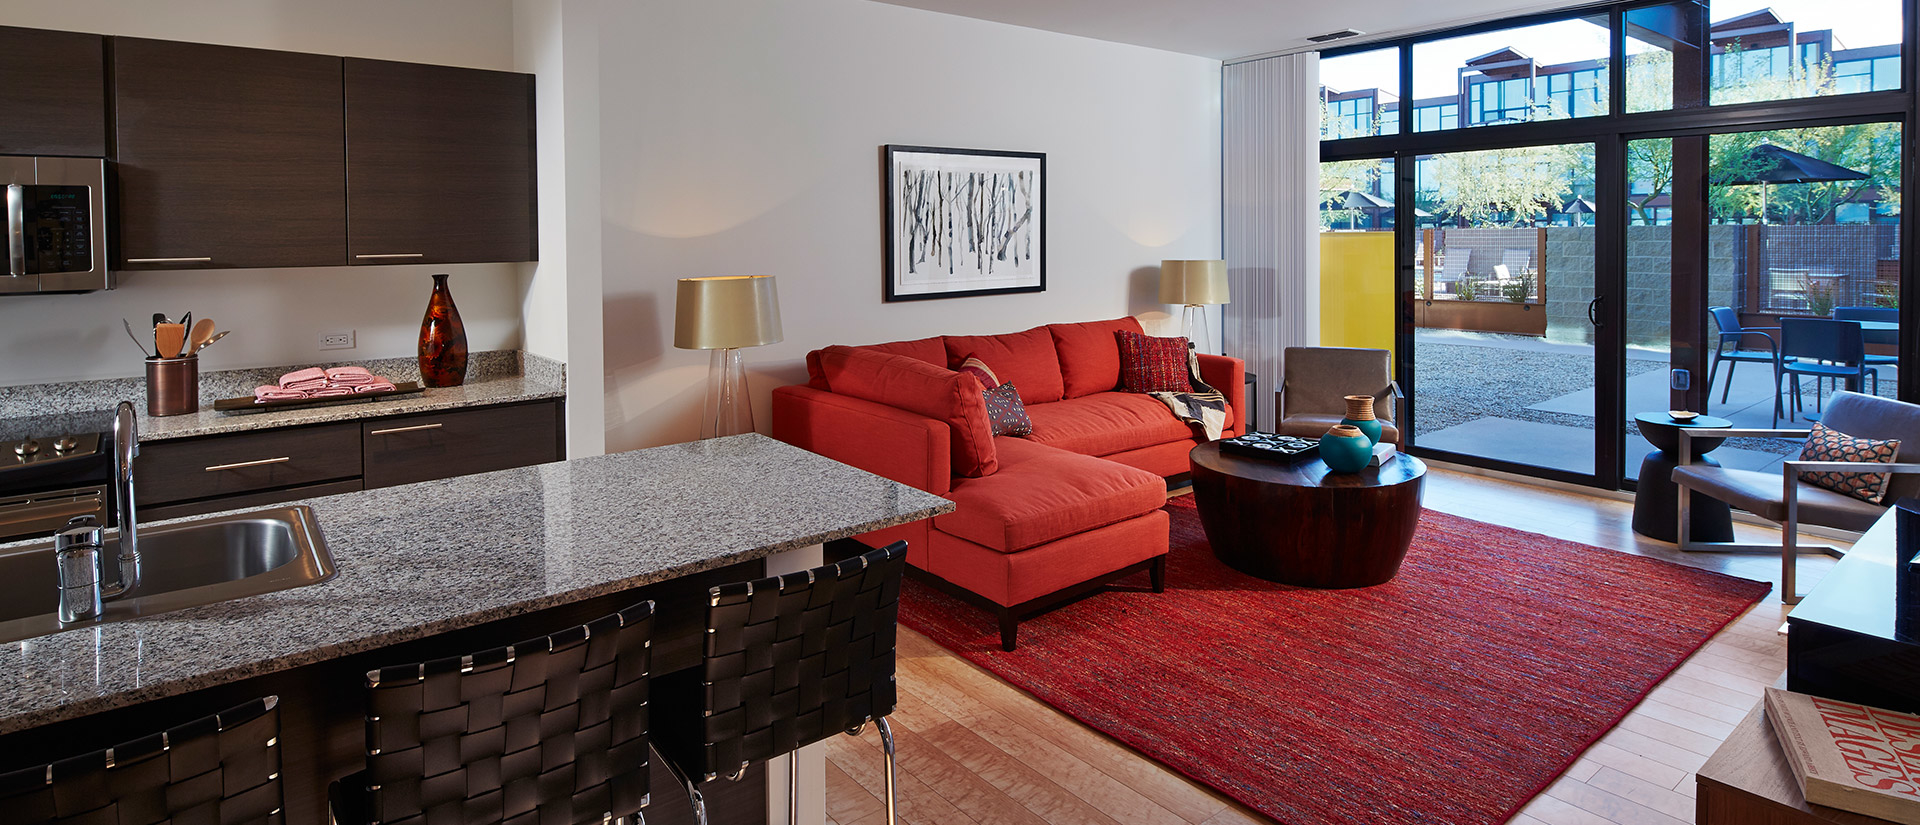 Domus apartments coupons near me in phoenix 8coupons for Domus address